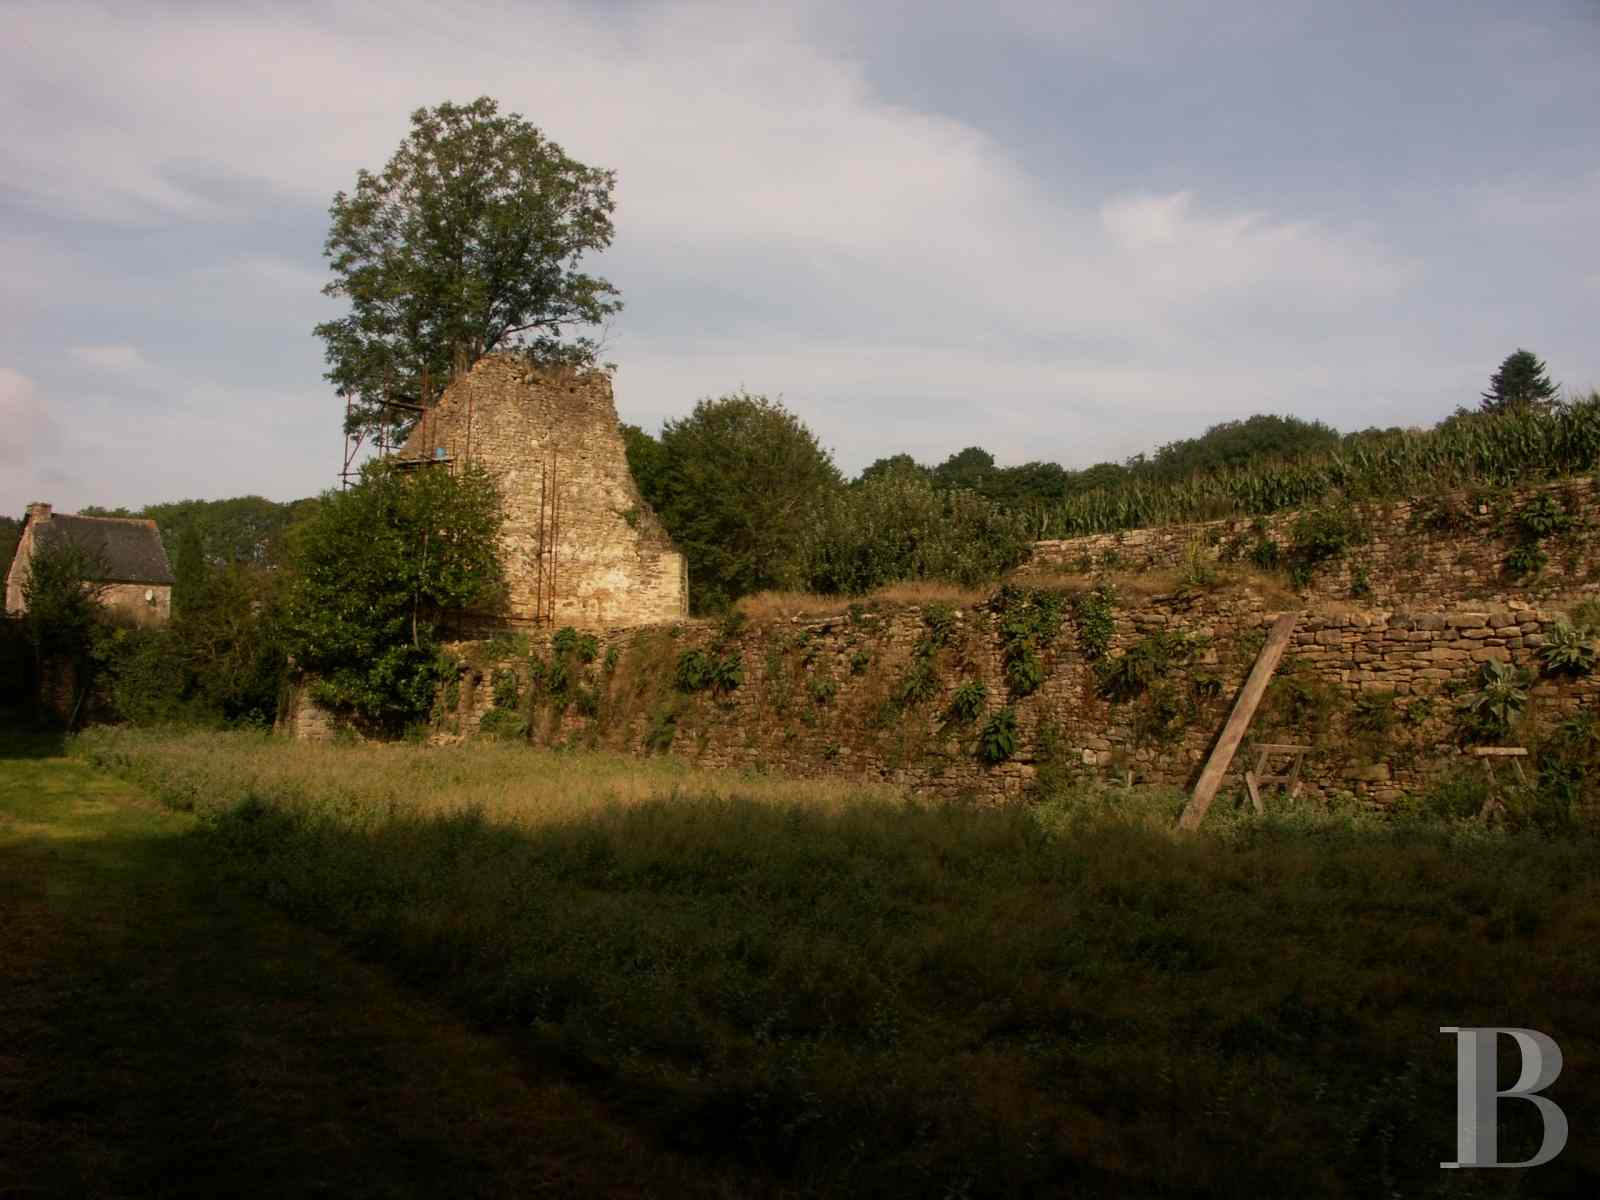 property for sale France brittany morbihan abbey - 7 zoom